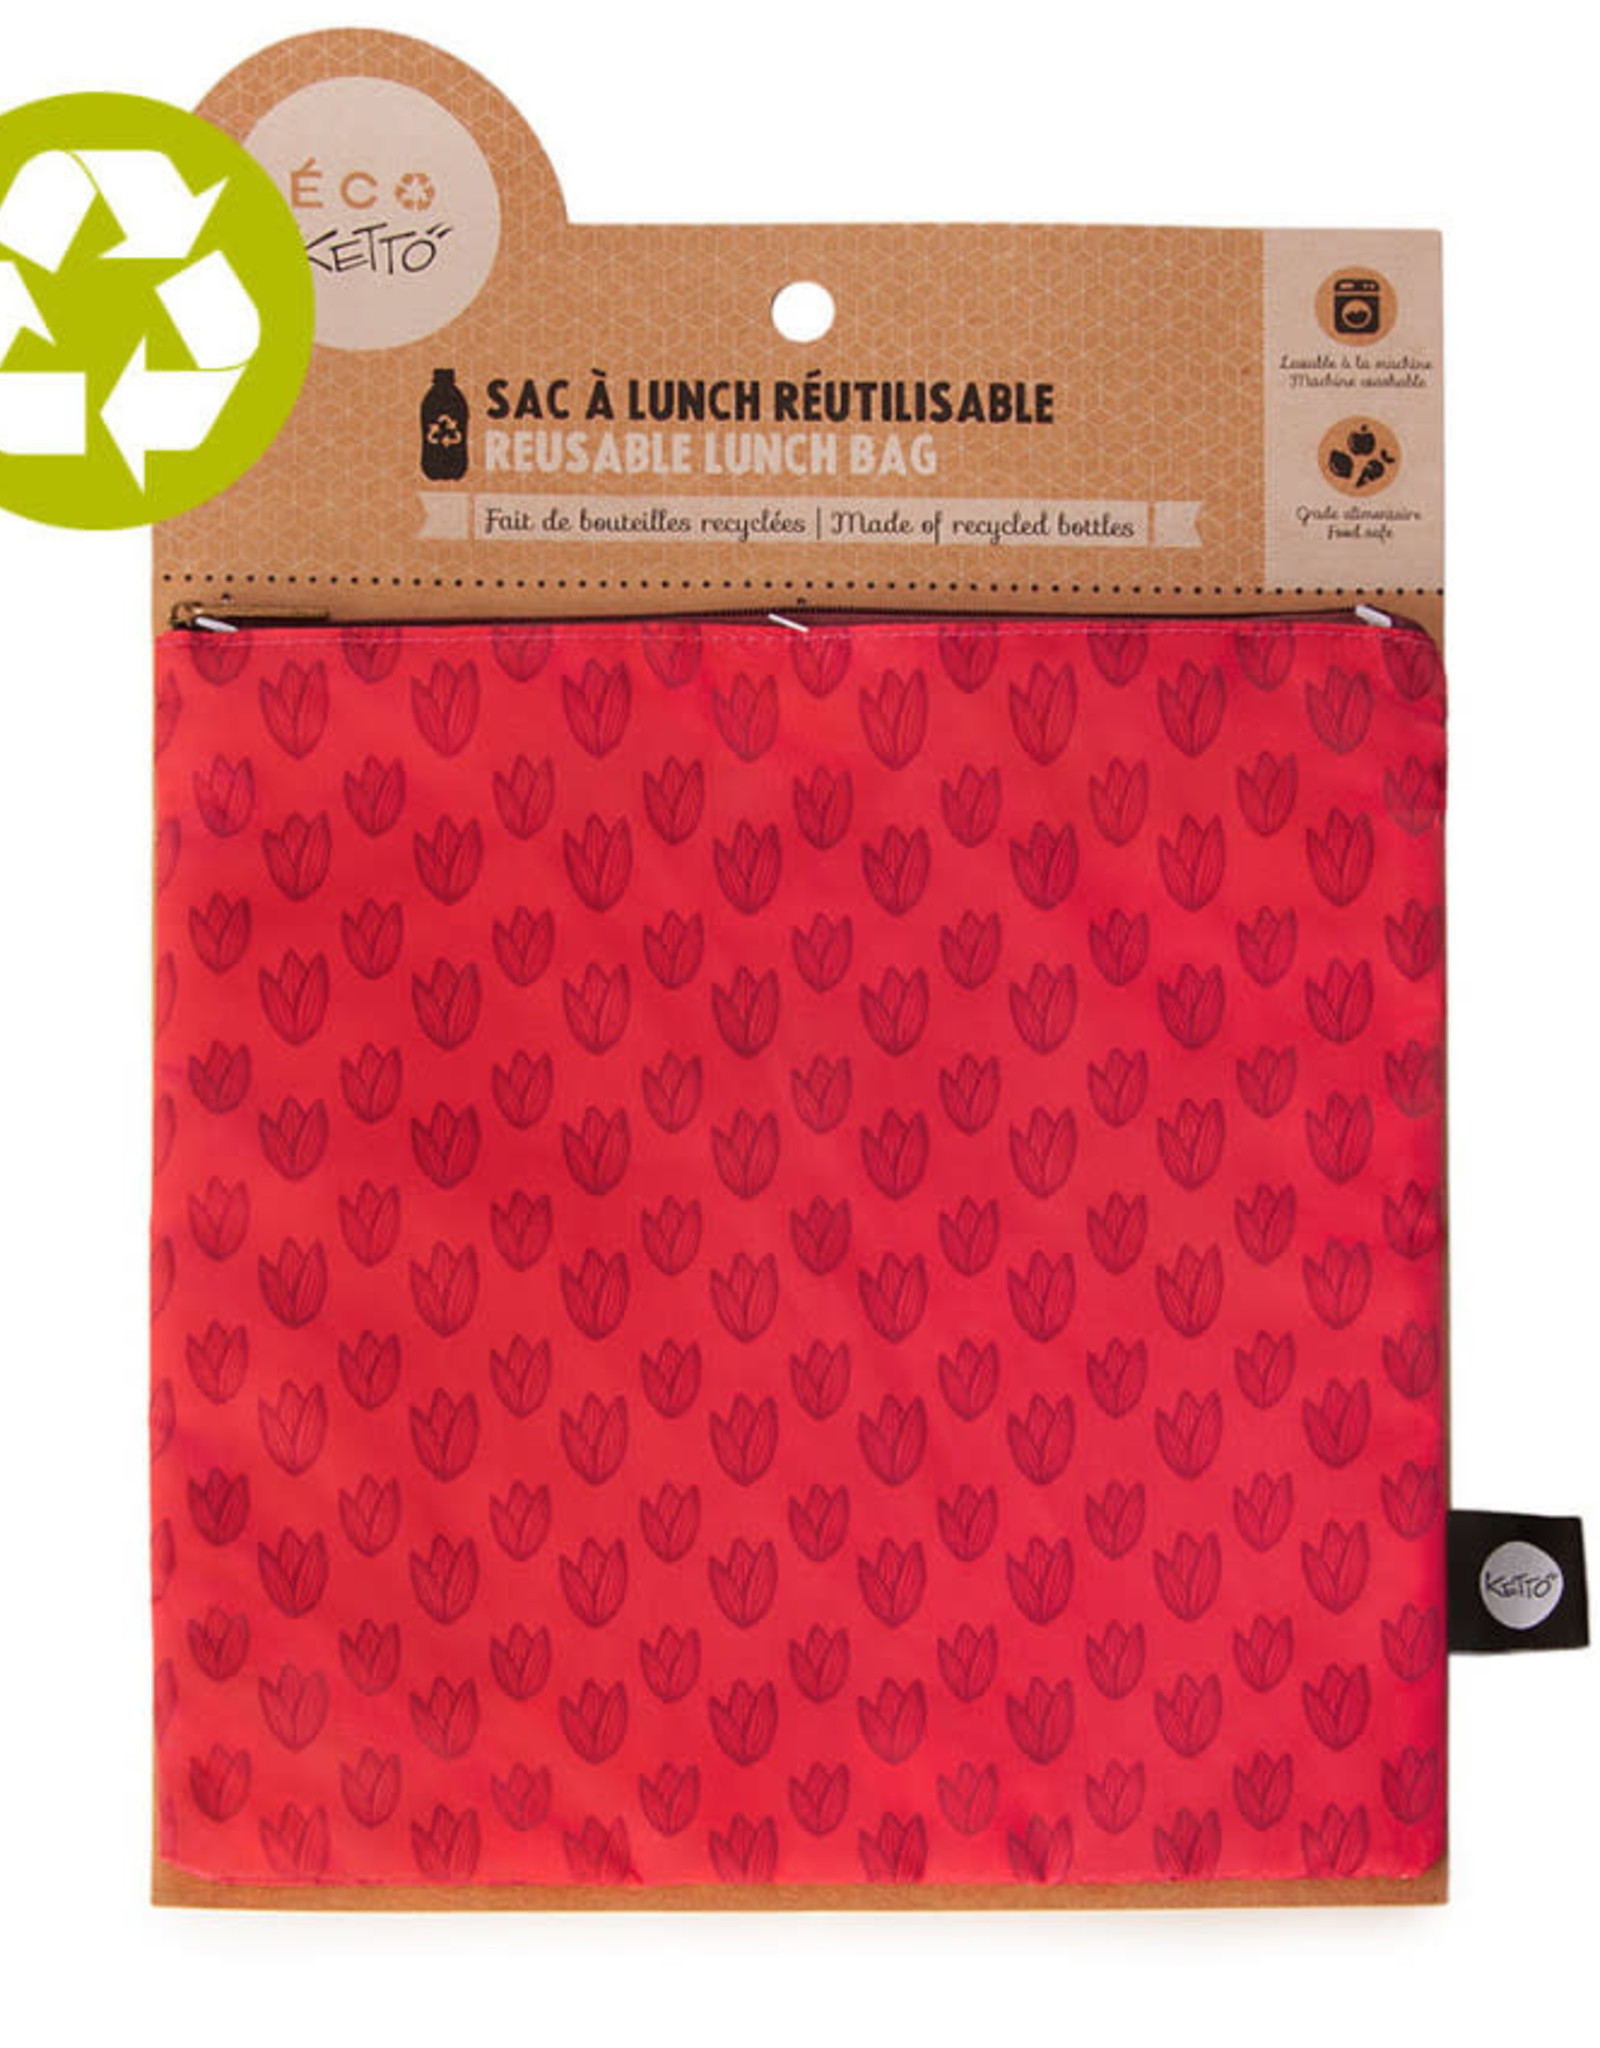 Ketto Reusable Lunch Bag Large Mother Nature